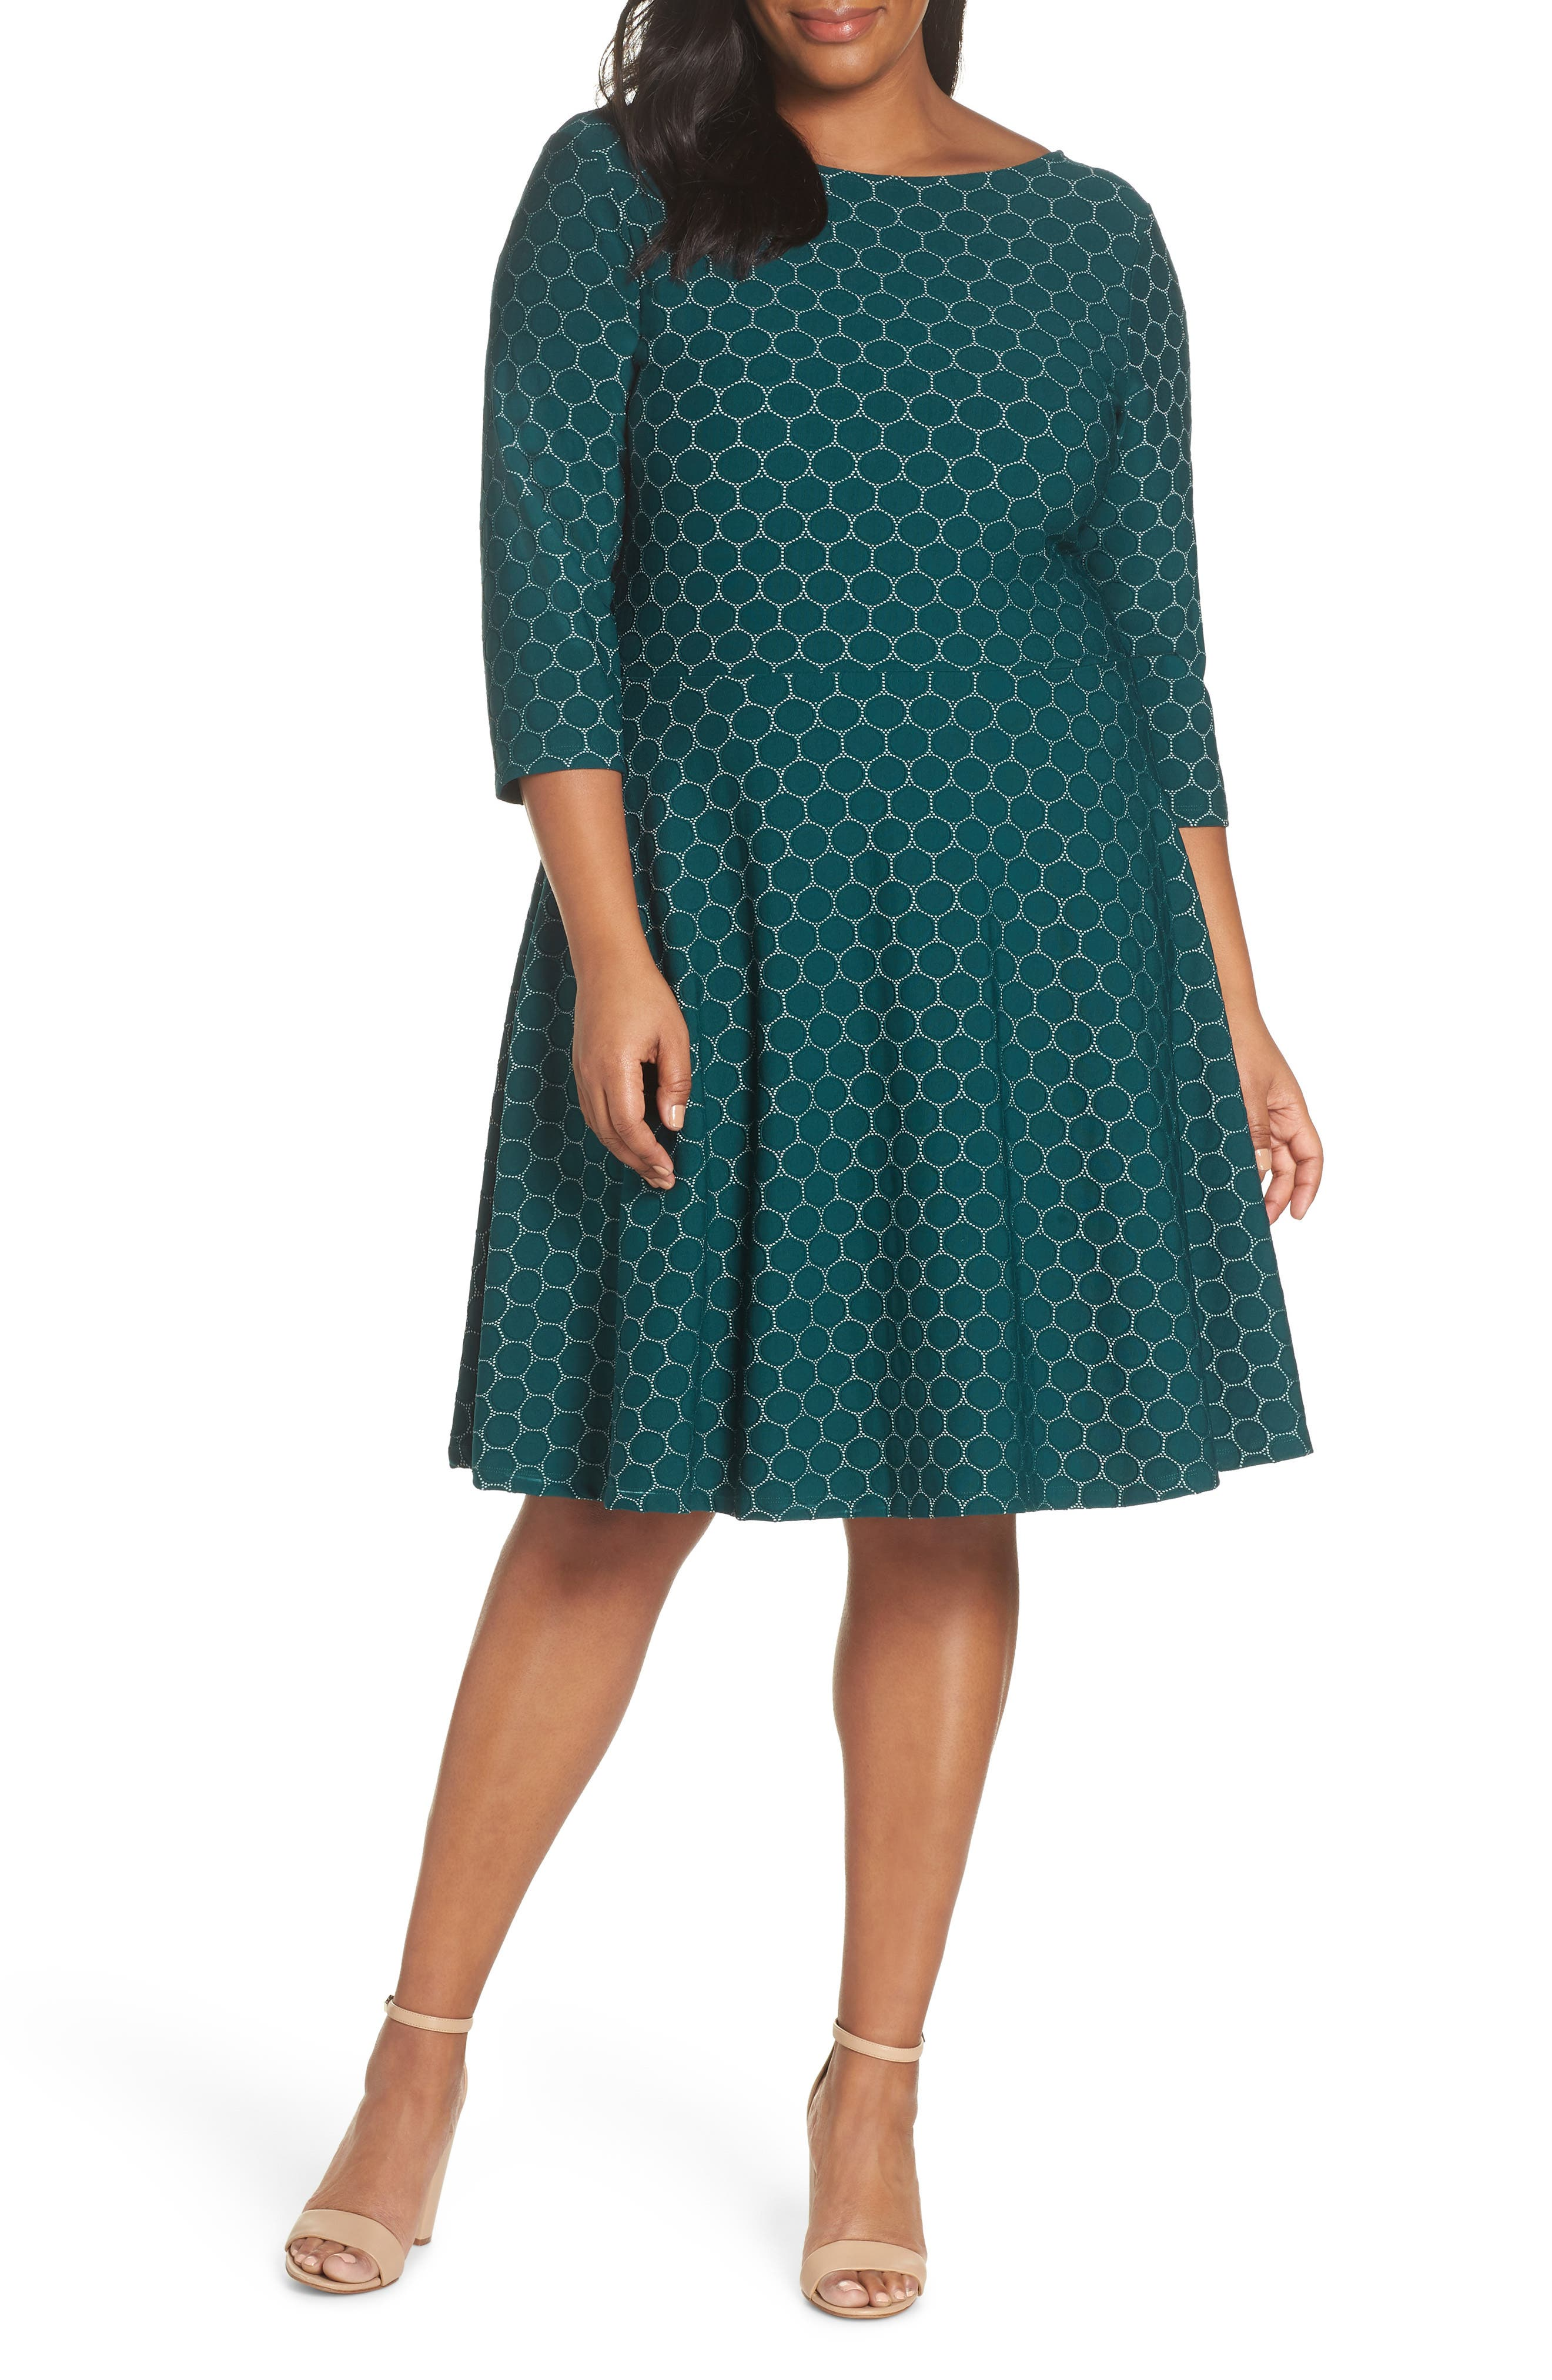 LEOTA Circle Knit Fit & Flare Dress in Botanical Luxe